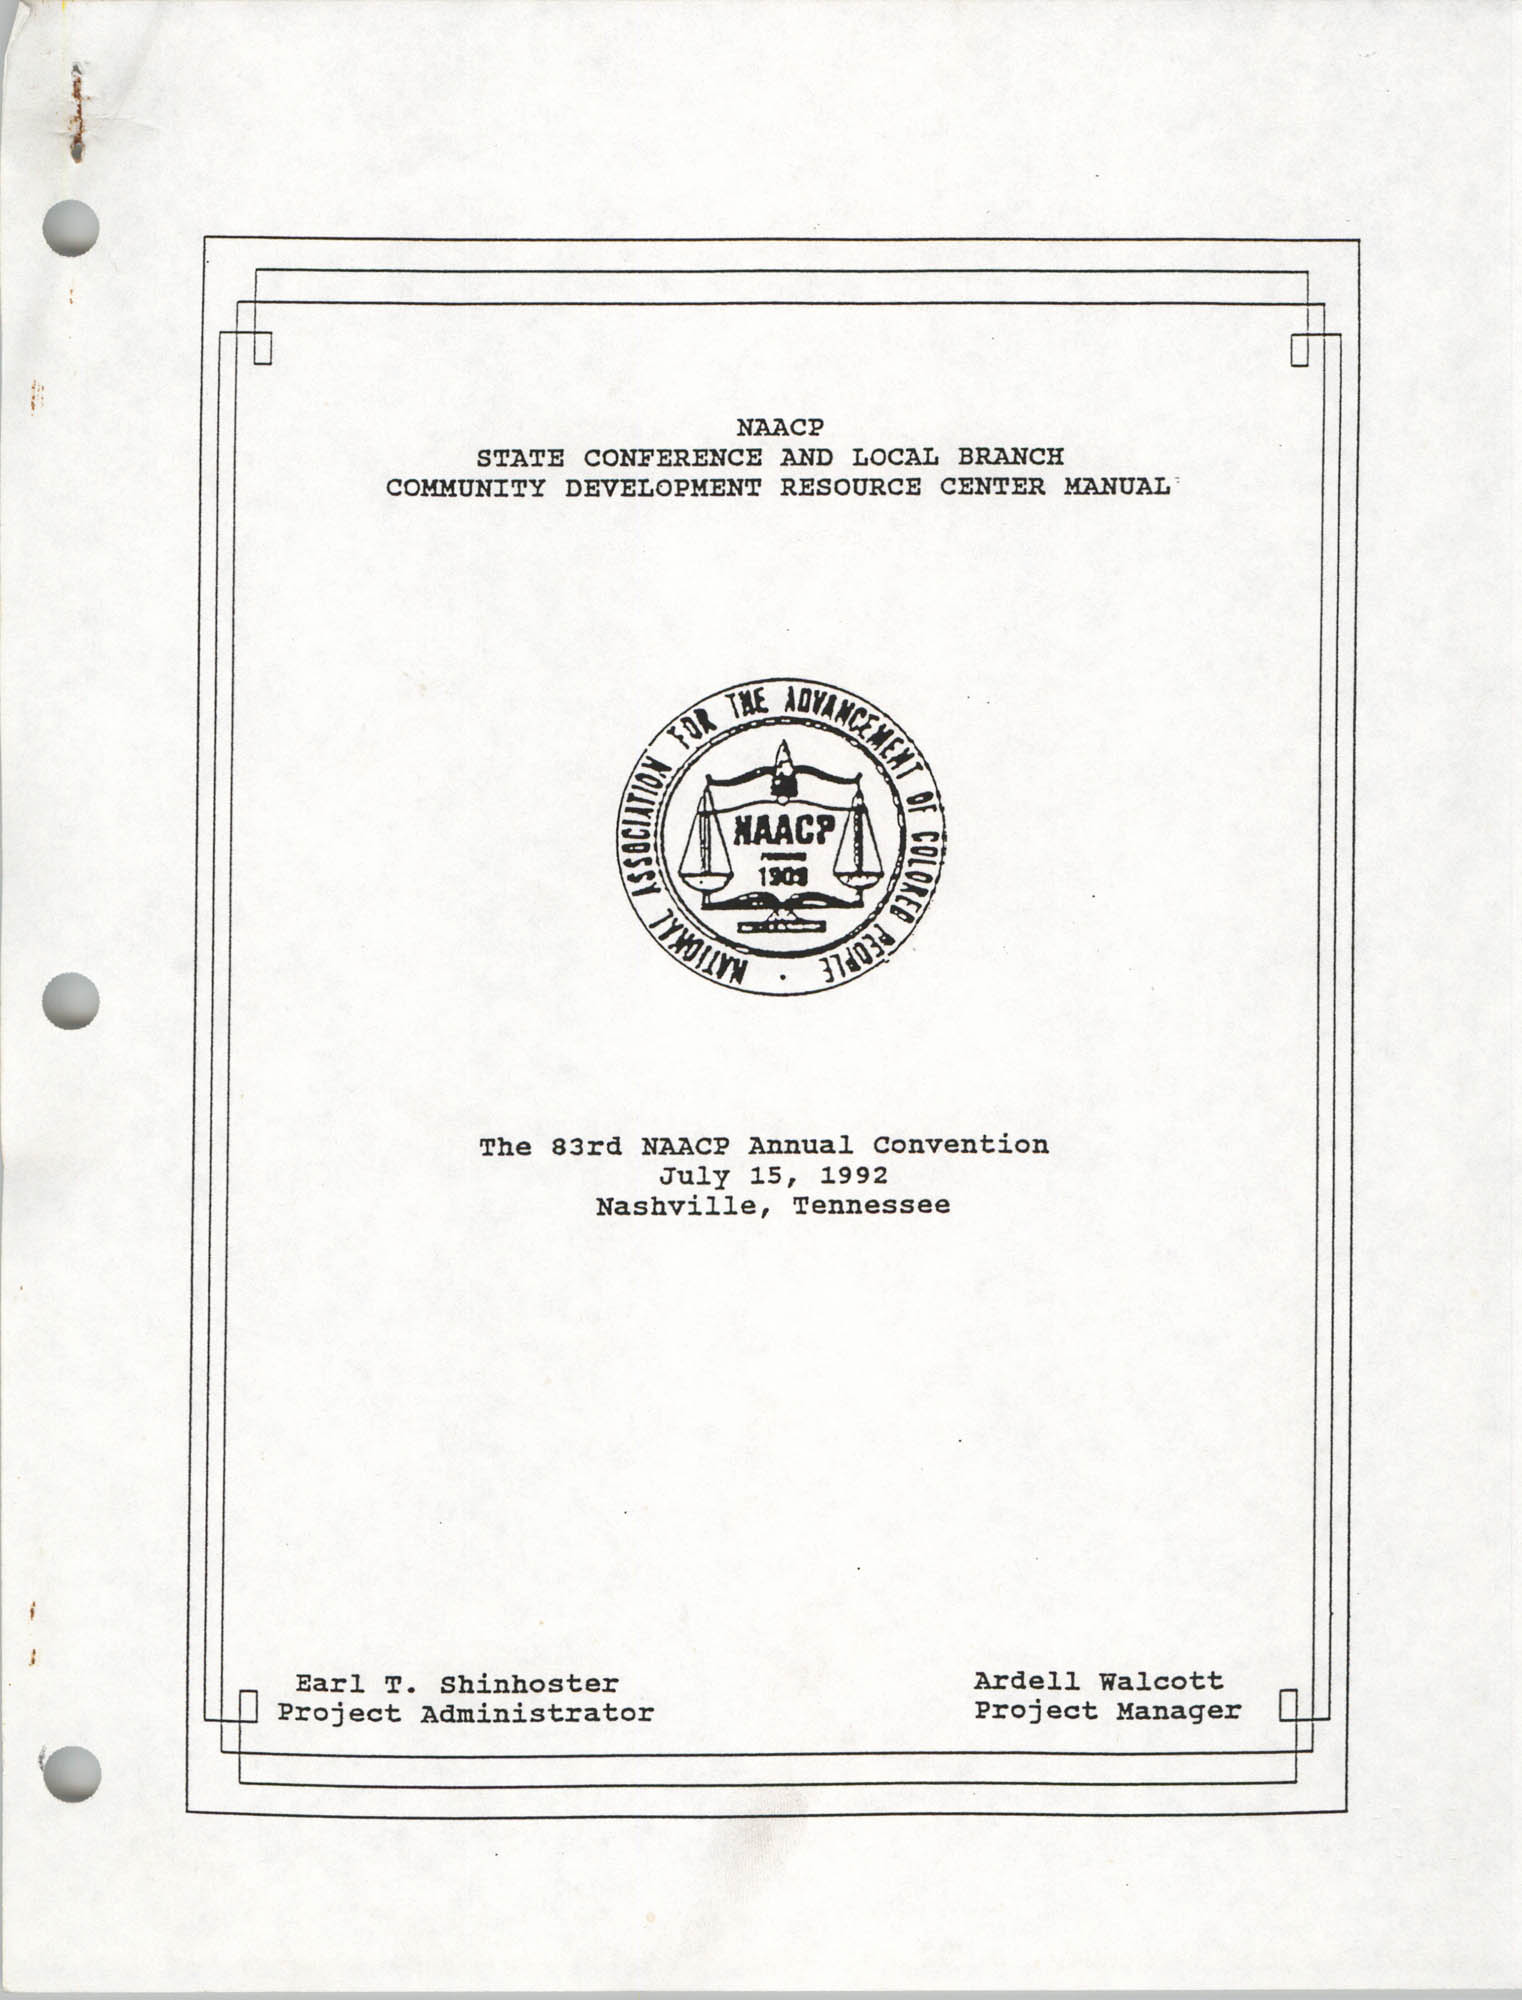 NAACP State Conference and Local Branch Community Development Resource Center Manual, Cover